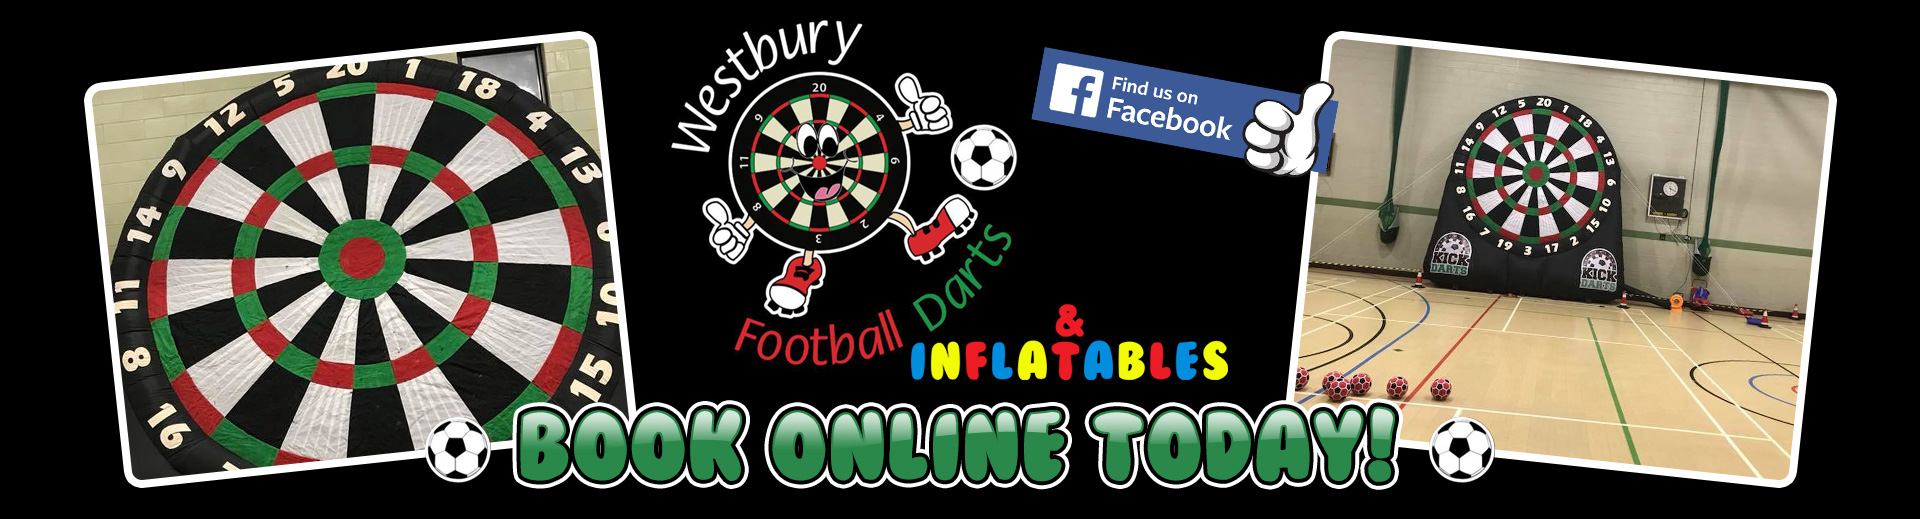 Westbury Football Darts And Inflatables